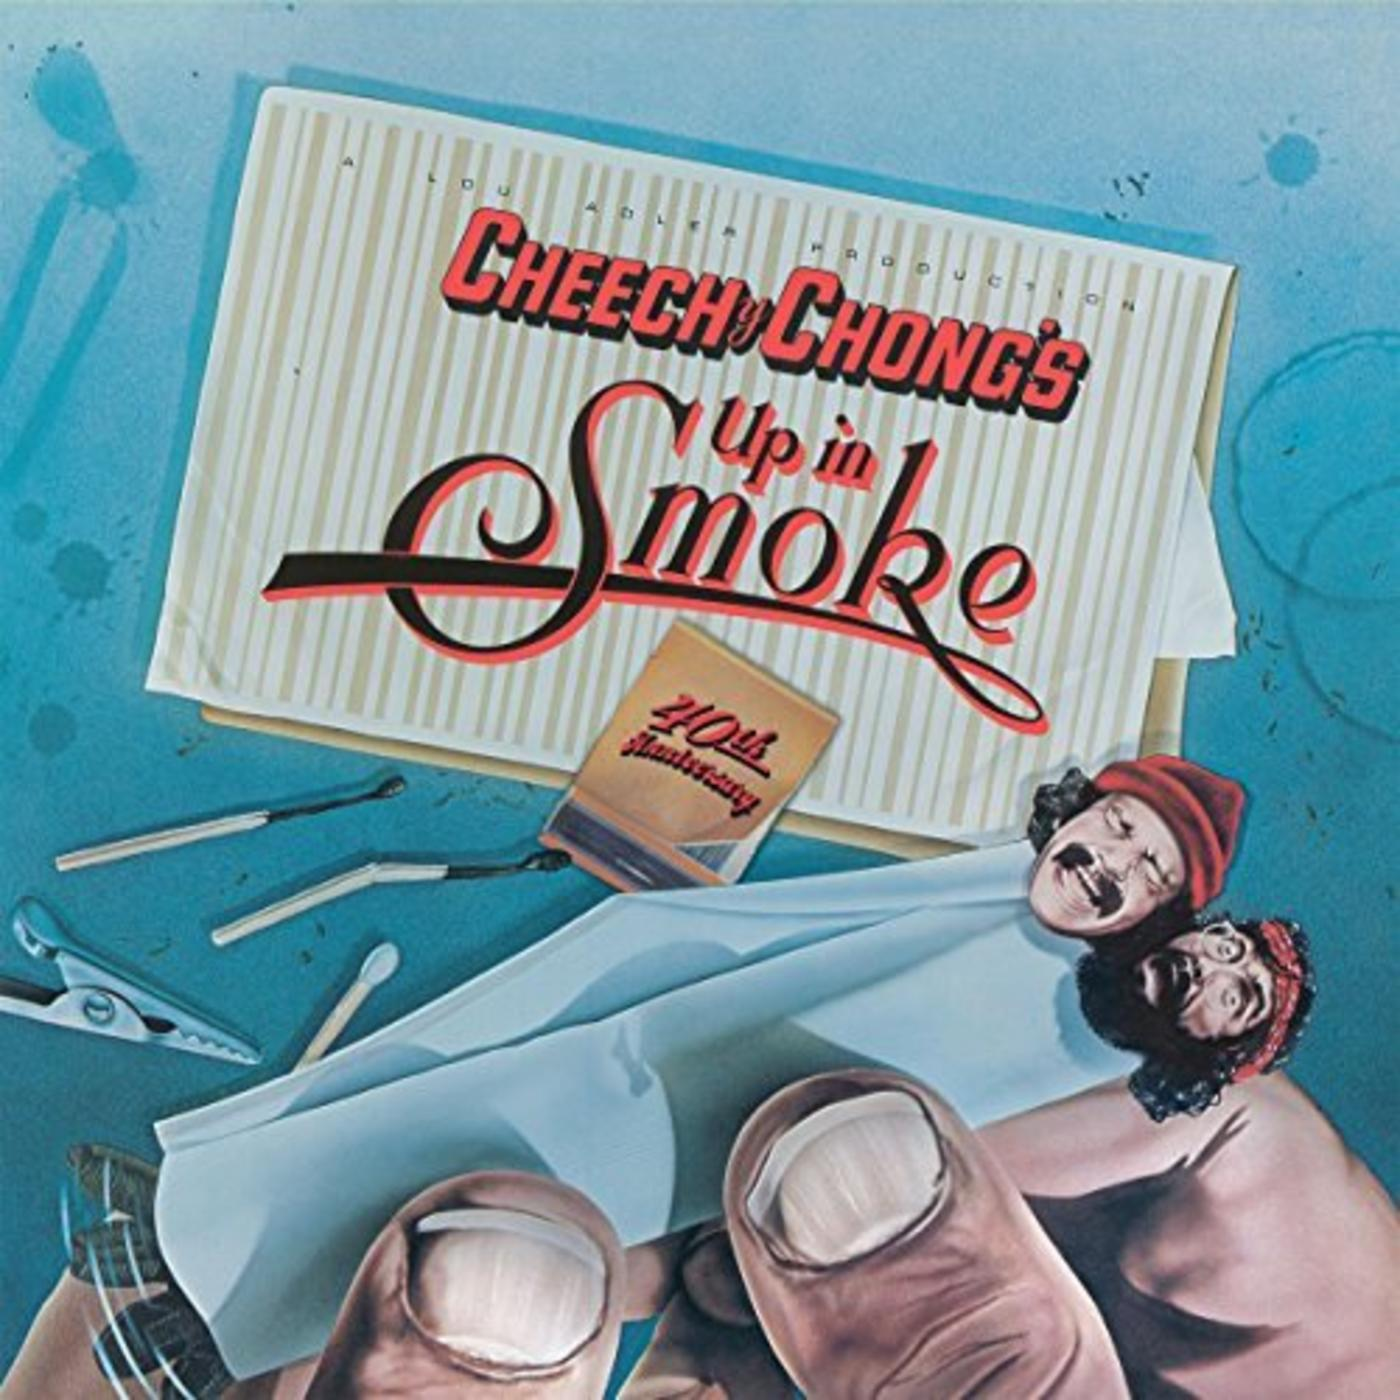 Cheech And Chong Up In Smoke Stream German